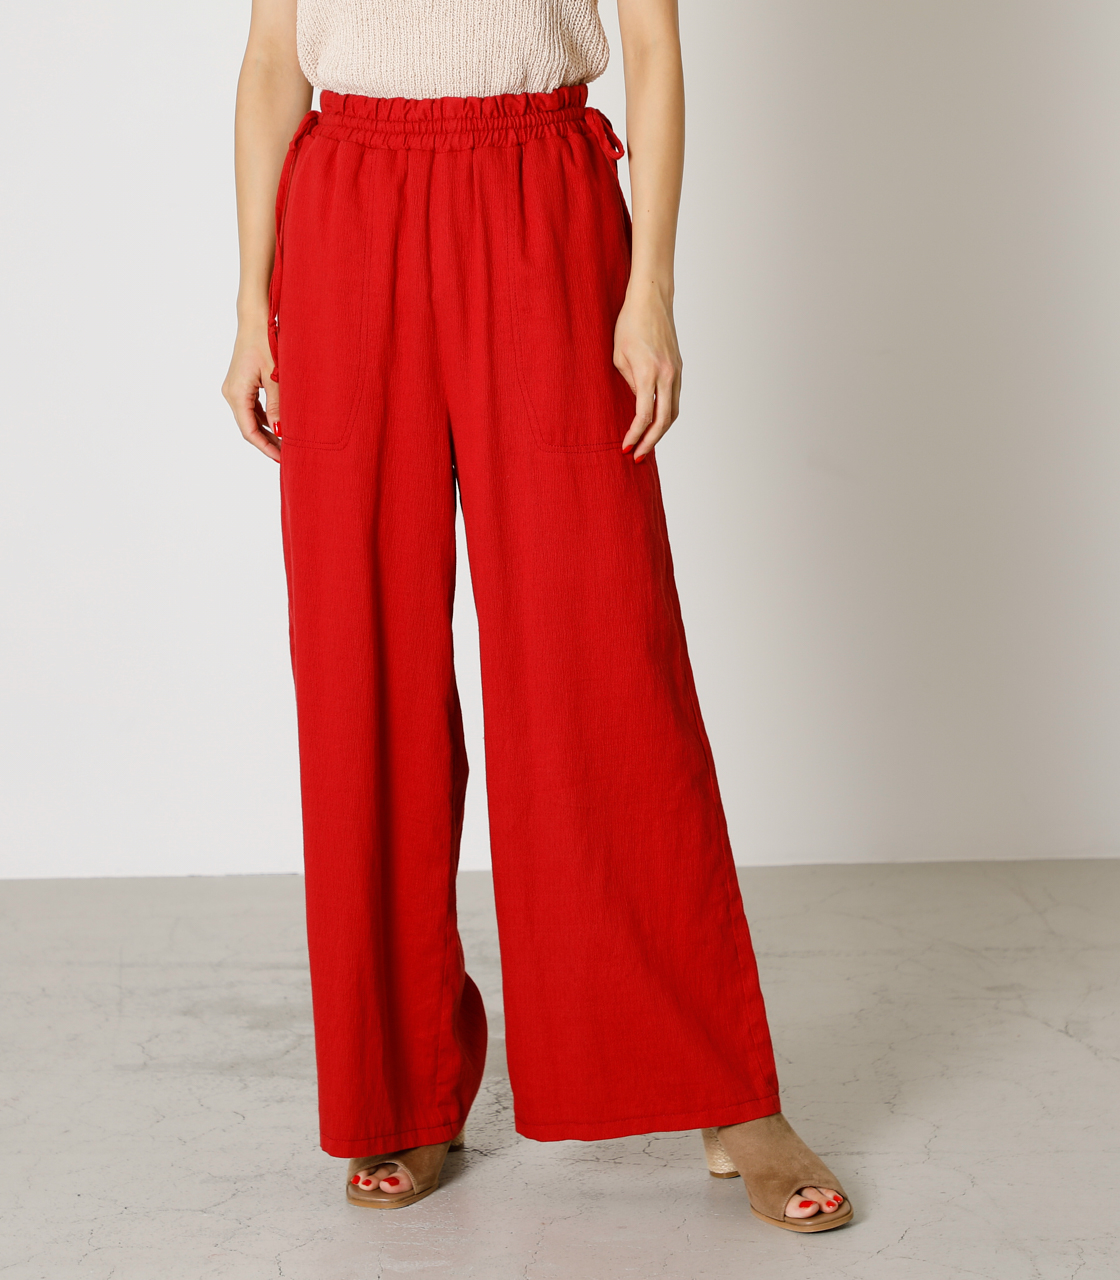 LINEN TOUCH LOOSE PANTS/リネンタッチルーズパンツ 詳細画像 RED 1